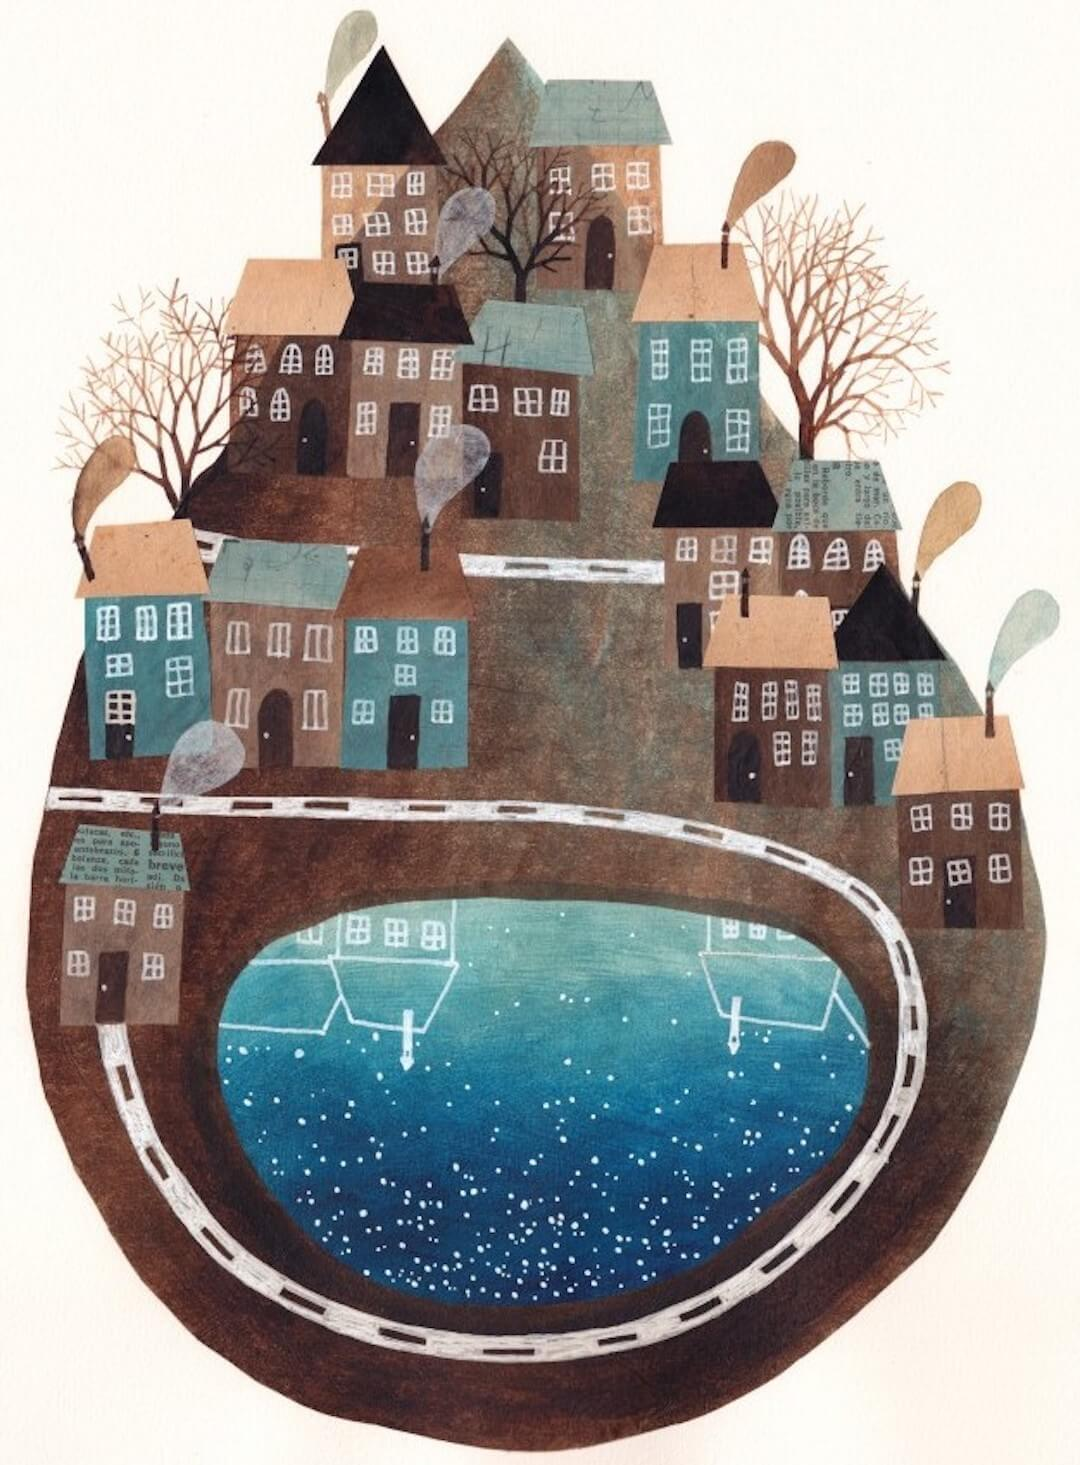 Brown Illustration by Gemma Capdevlila